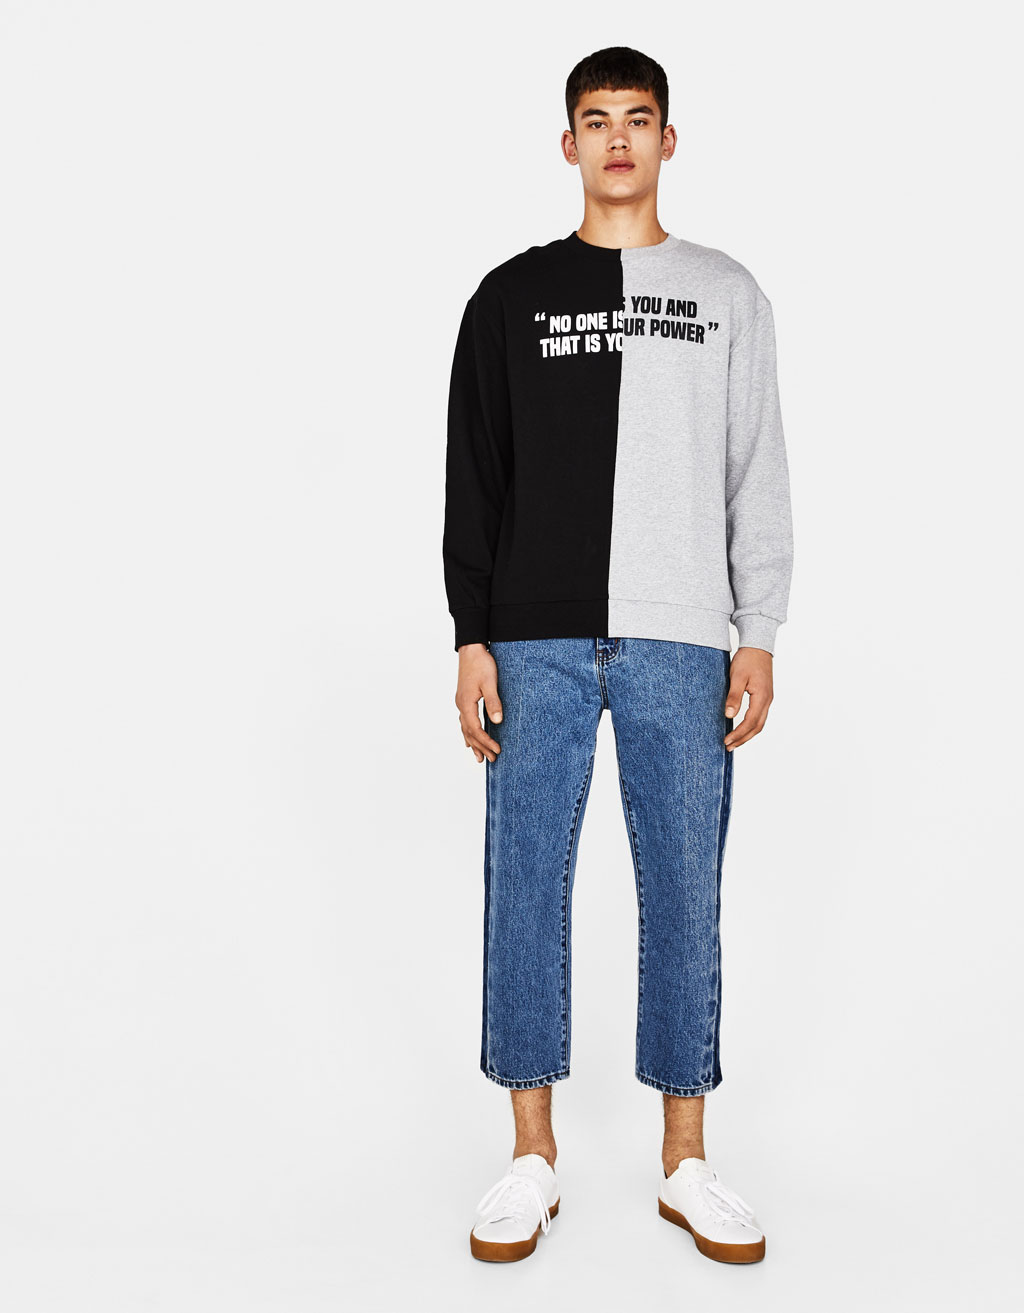 Contrasting sweatshirt with slogan